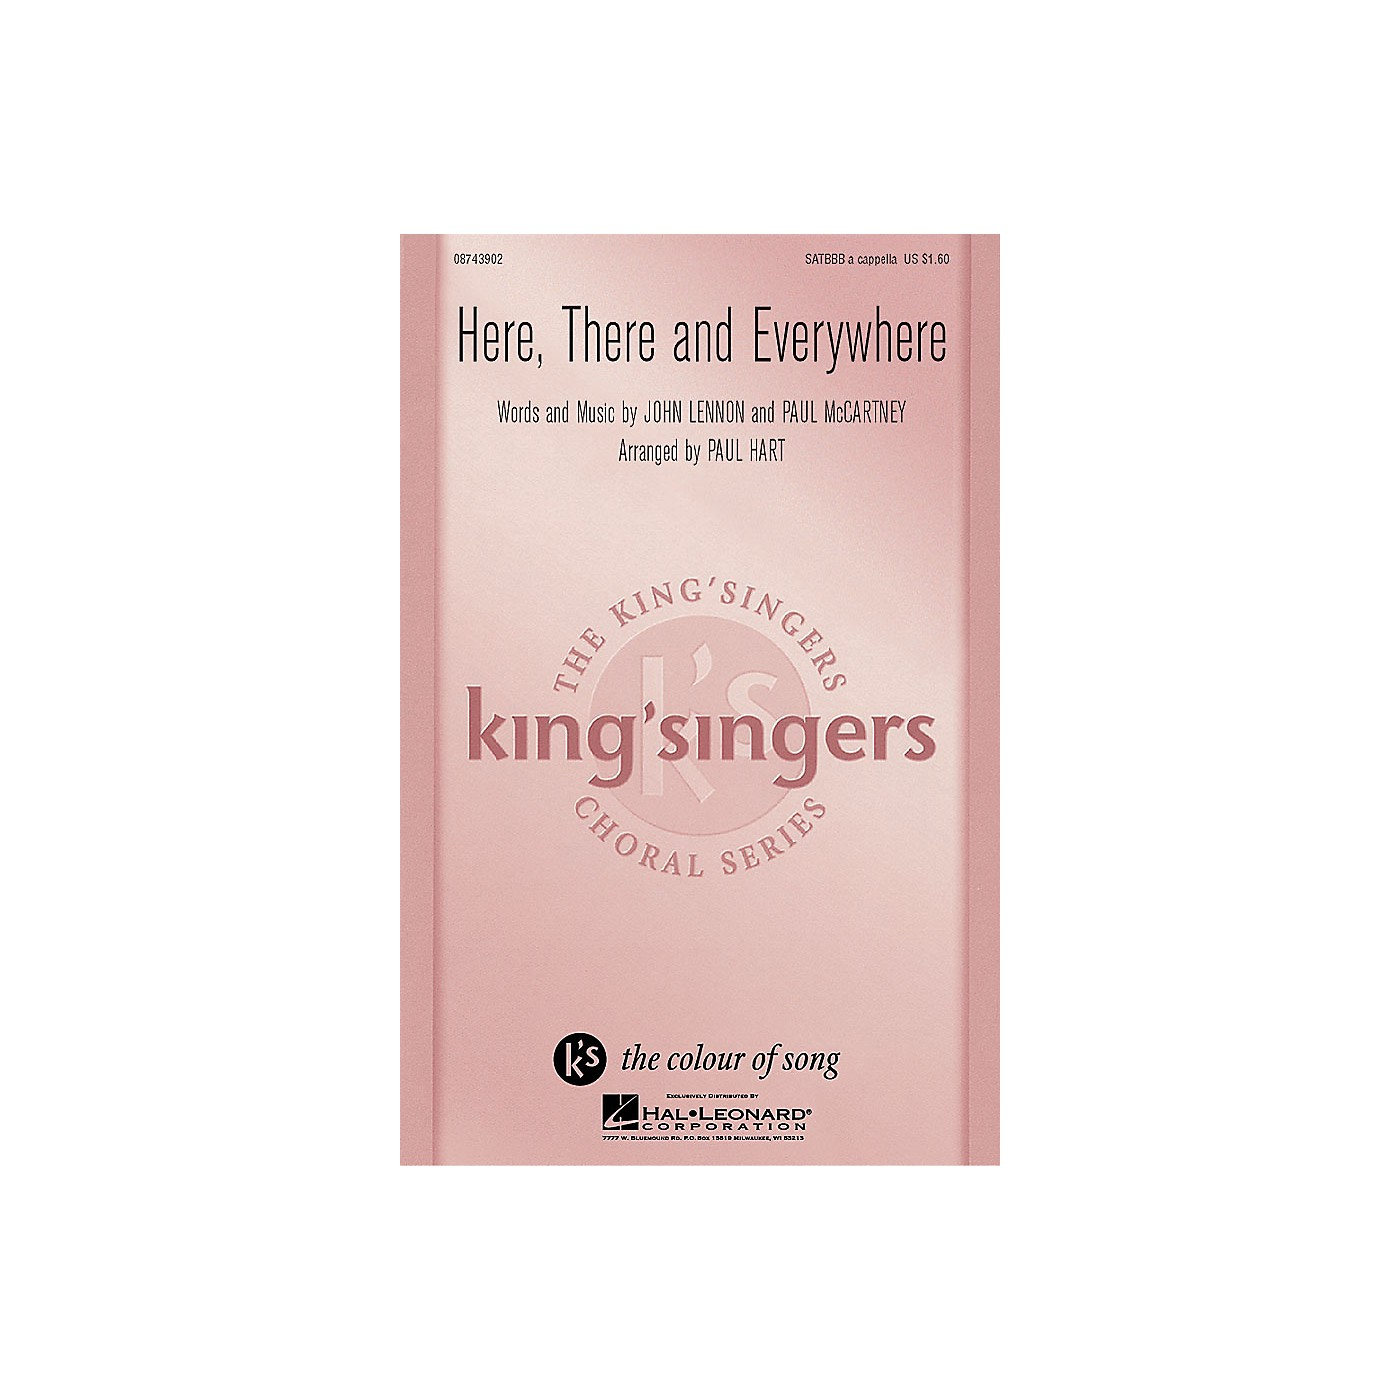 Hal Leonard Here, There And Everywhere SATBBB a cappella by The King's Singers arranged by Paul Hart thumbnail